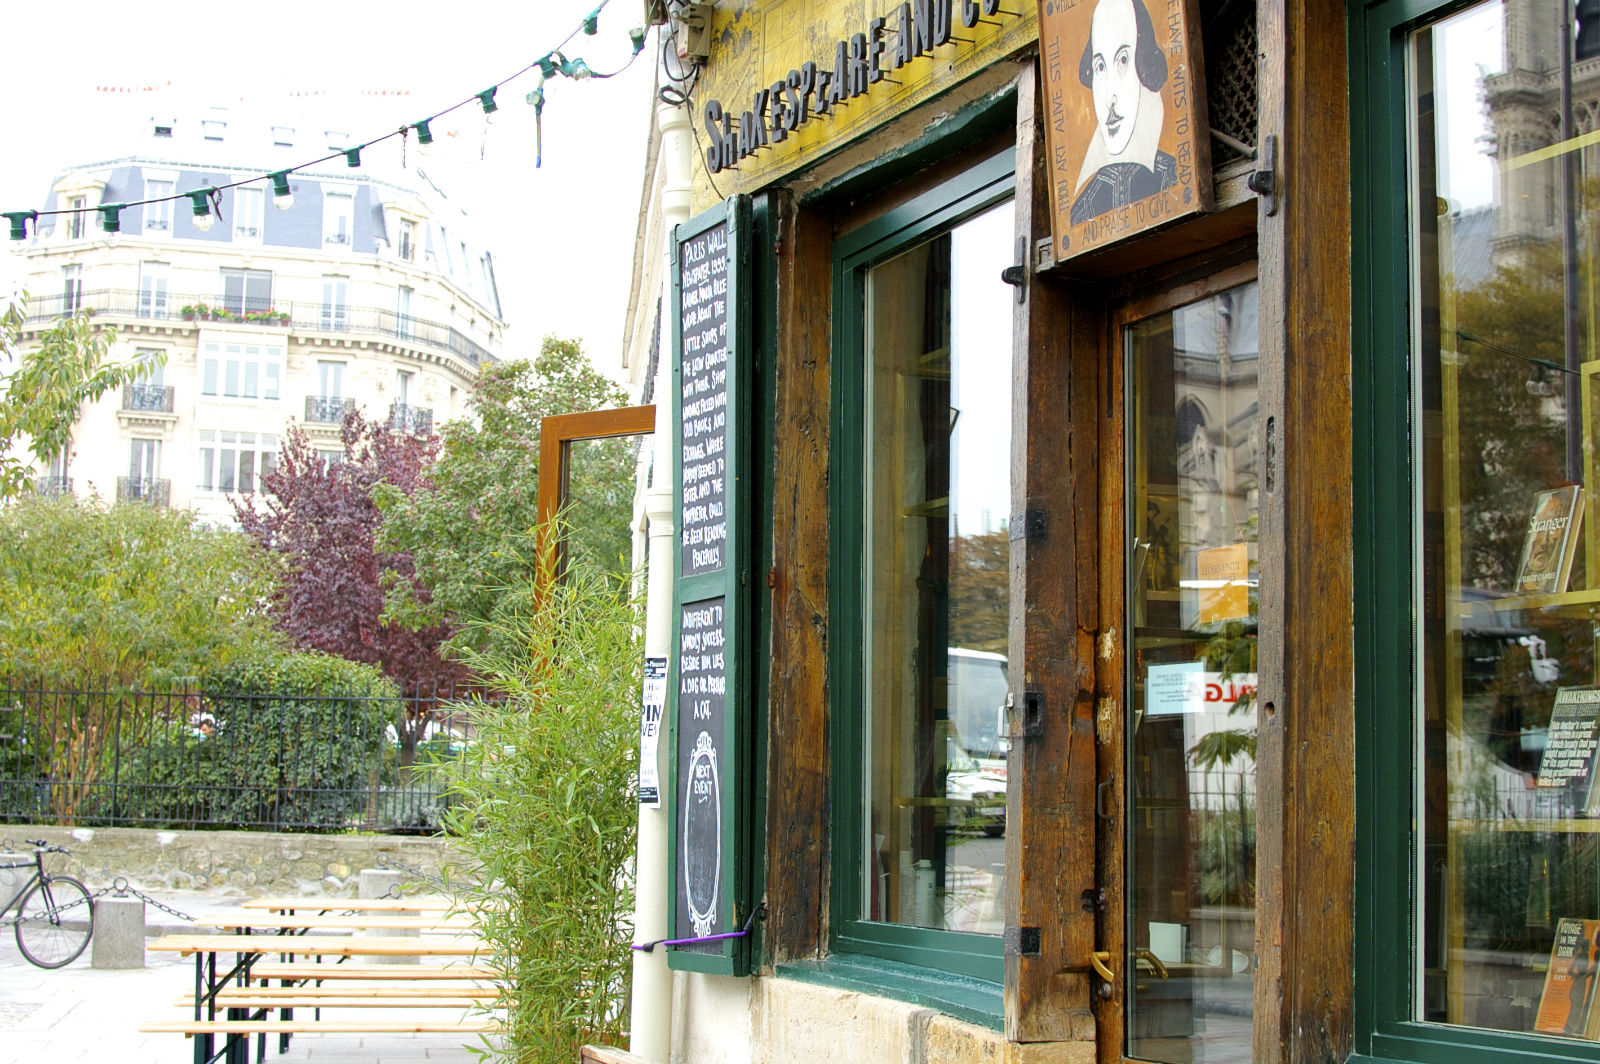 HiP Paris Blog. Shakespeare & Company Café. Where Whitman's piece of the story began.